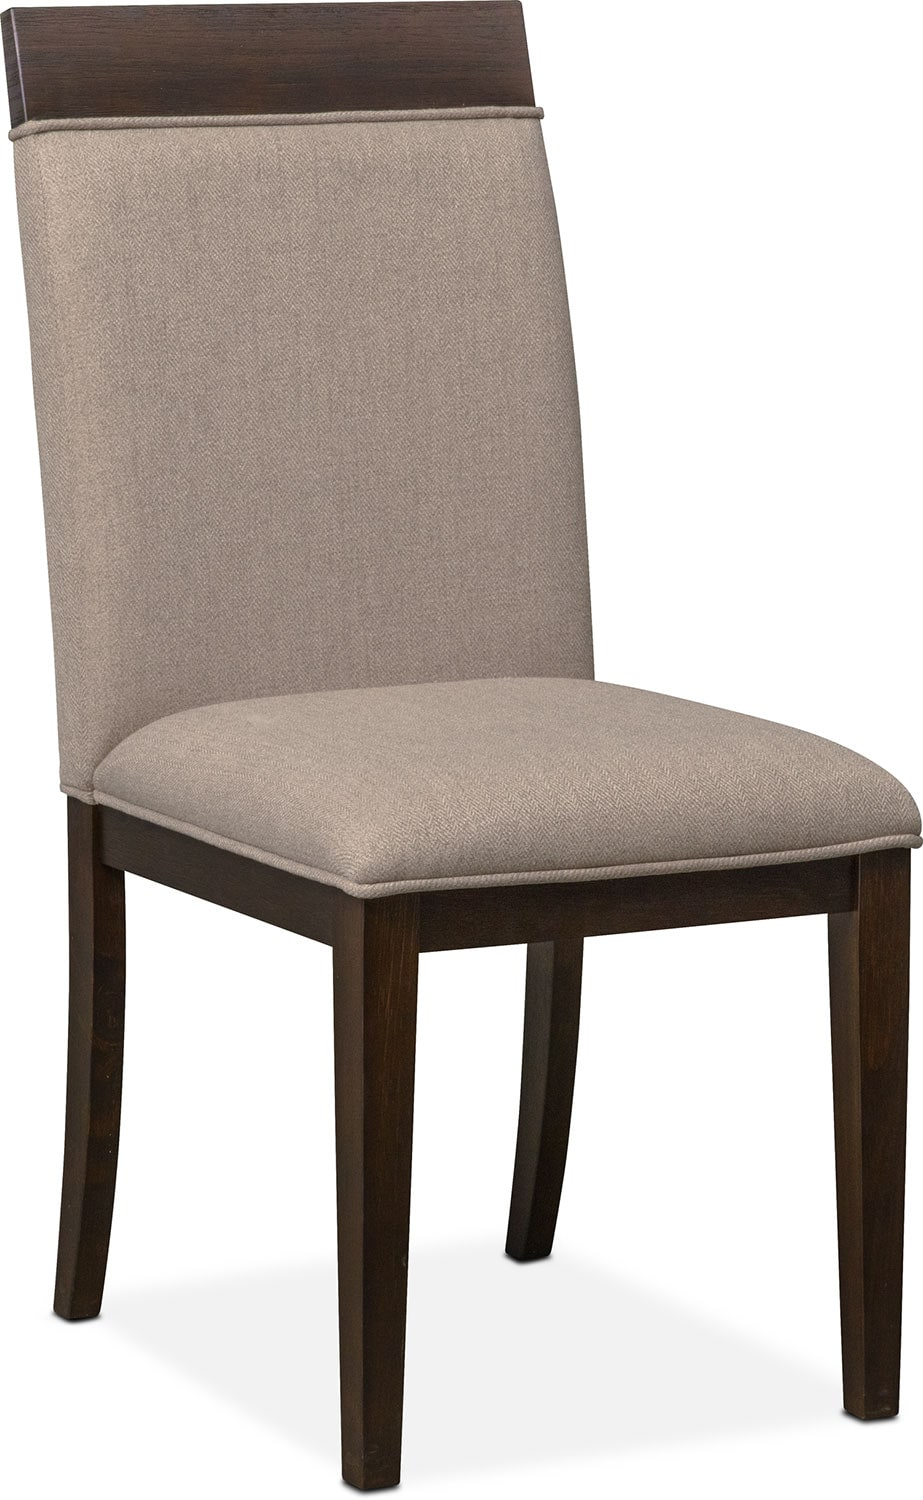 Dining Room Furniture - Gavin Side Chair - Brownstone